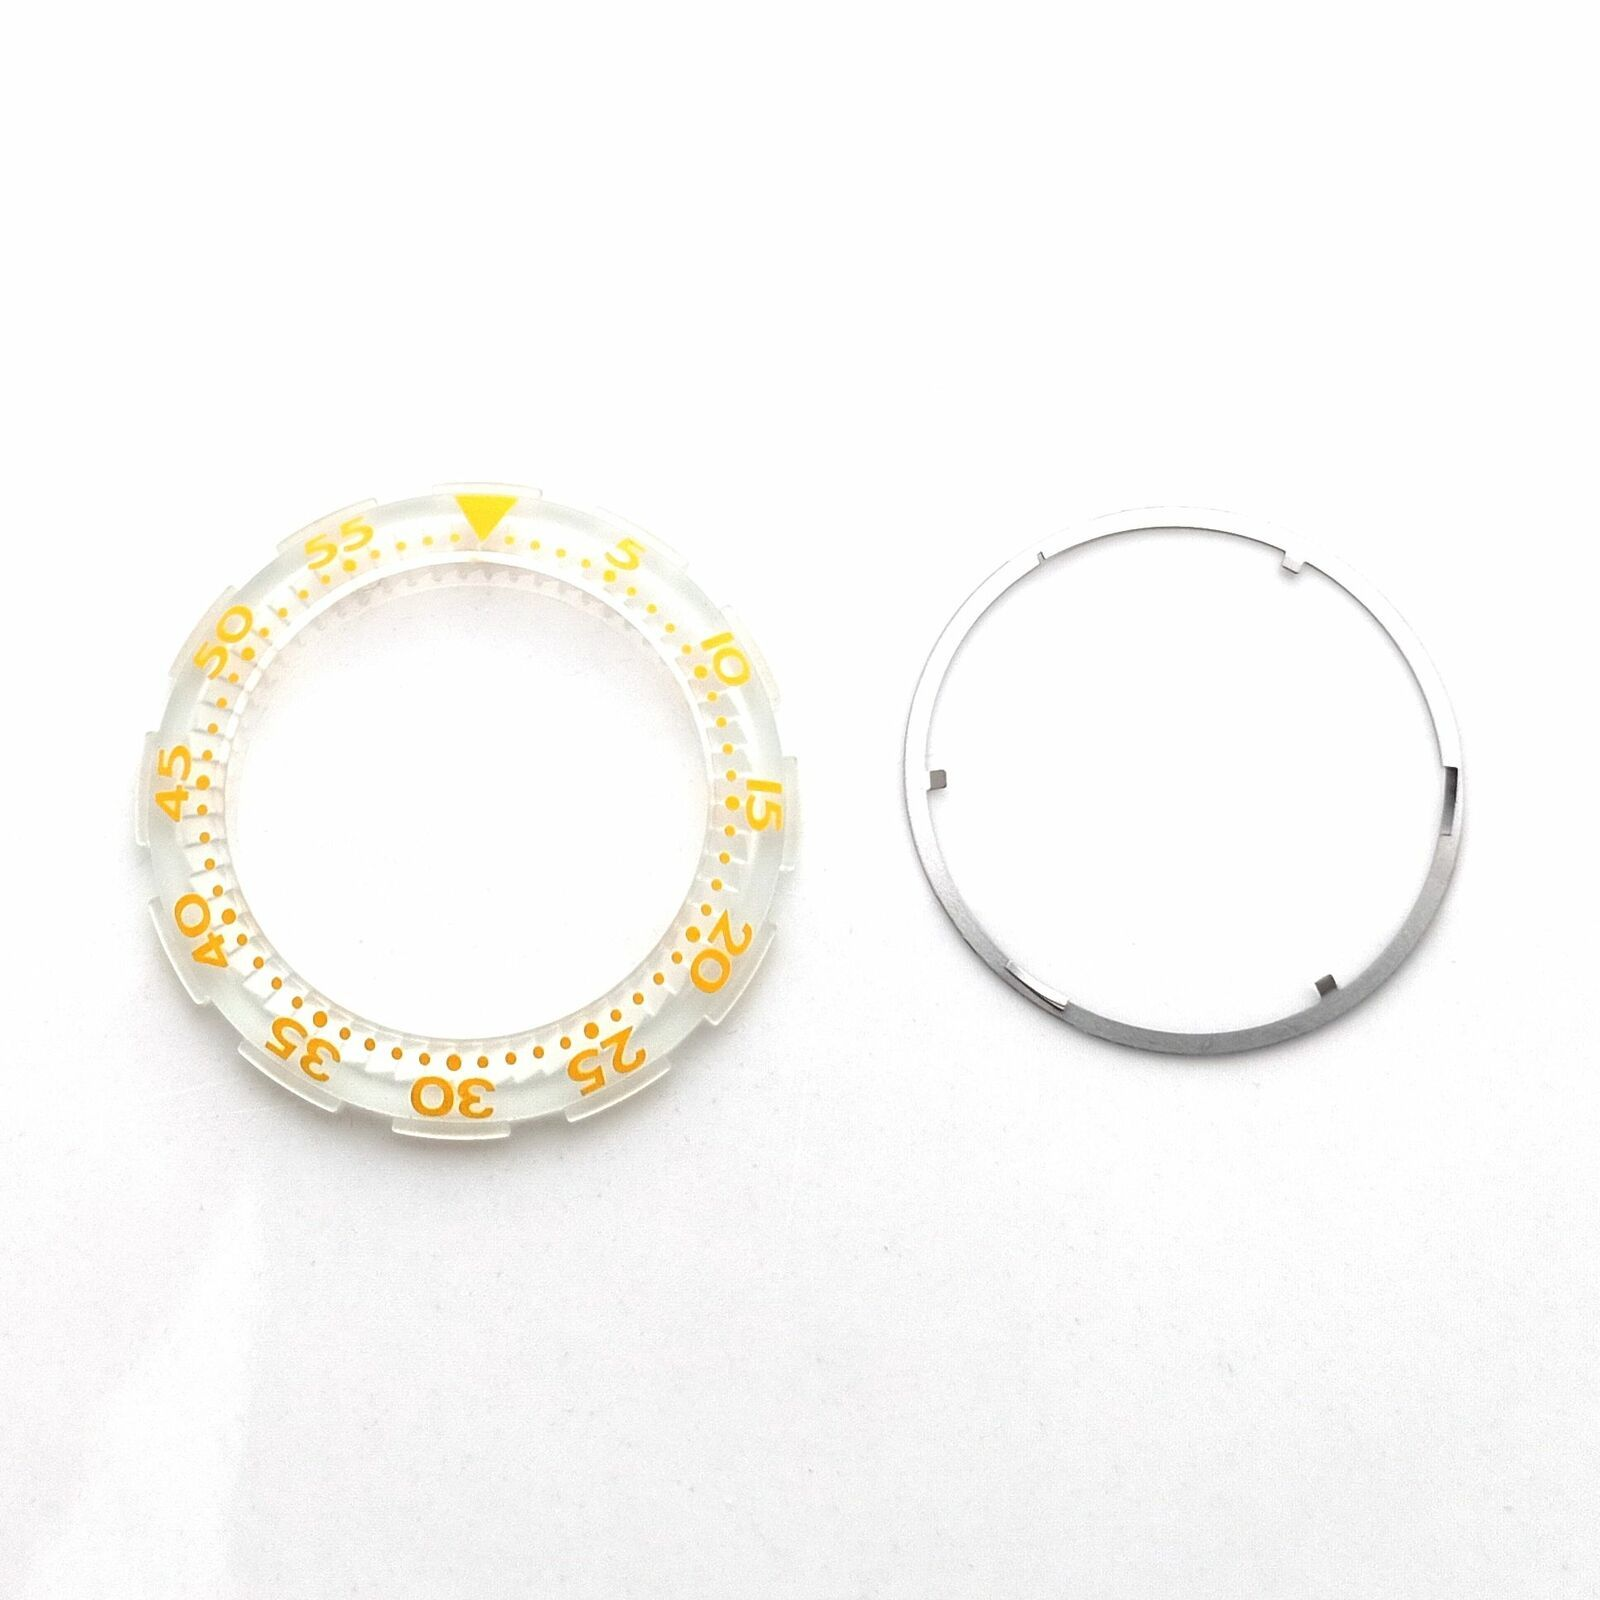 Primary image for SWATCH Rotating SCUBA Bezel + Click Tension Ring NEW Replacement Spare Part P89D